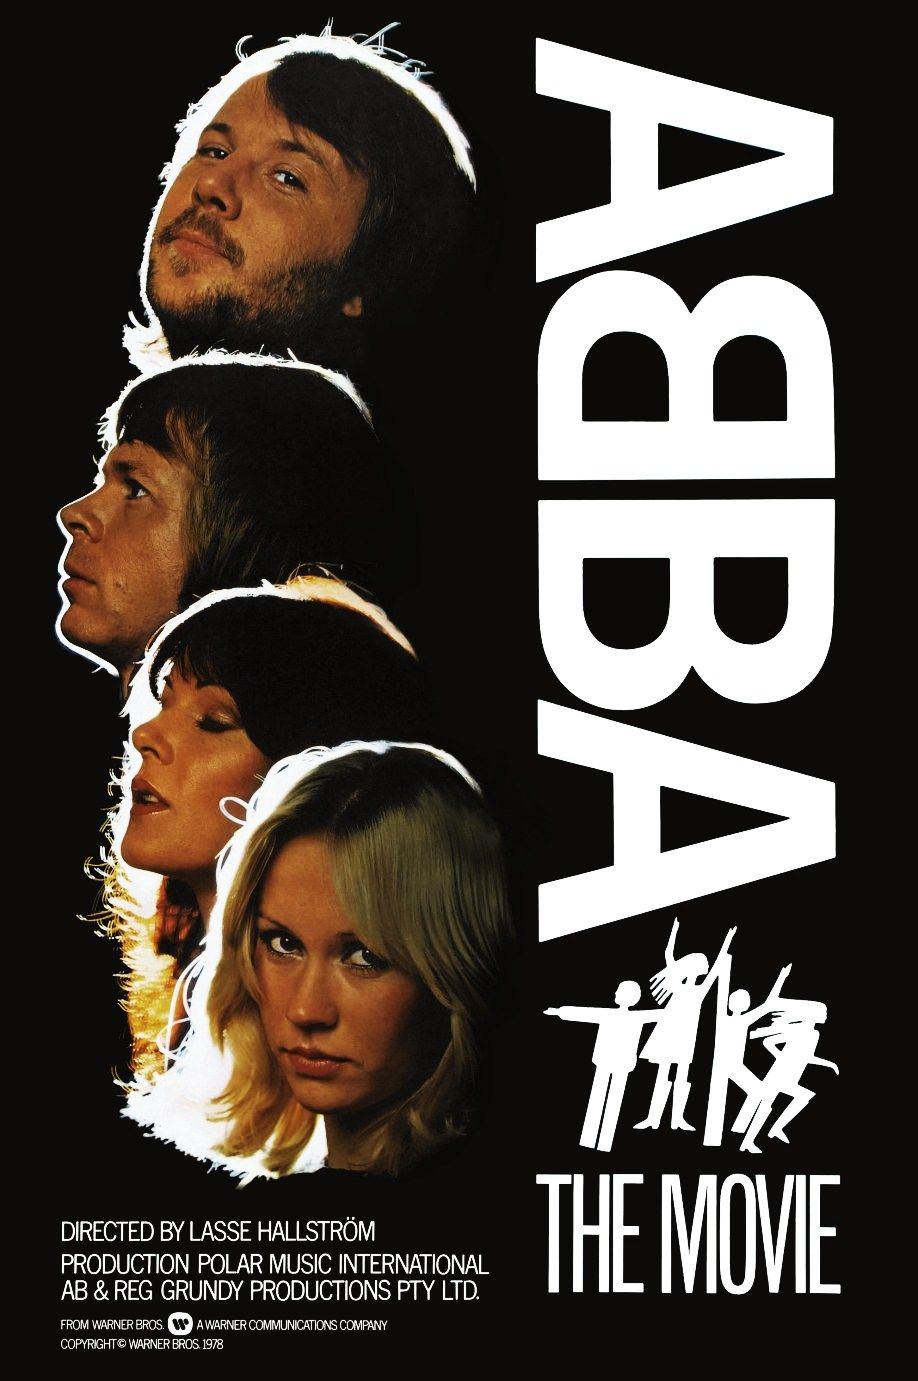 Abba The Movie Stand Up Display Gift Idea Band Collectibles Memorabilia Abba Movie Posters Movies